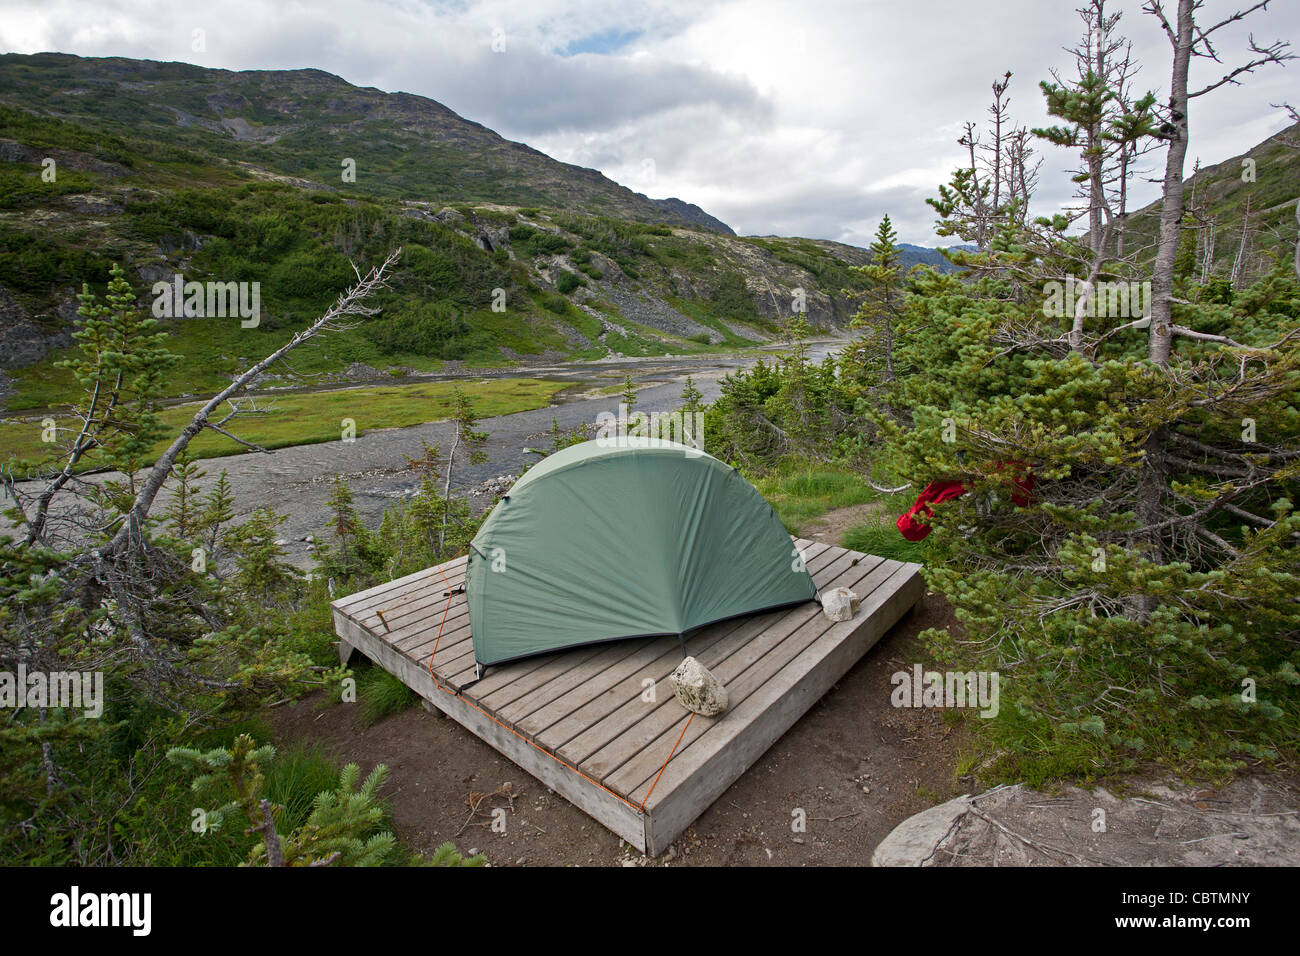 Tent On A Wooden Platform Happy Camp Chilkoot Trail